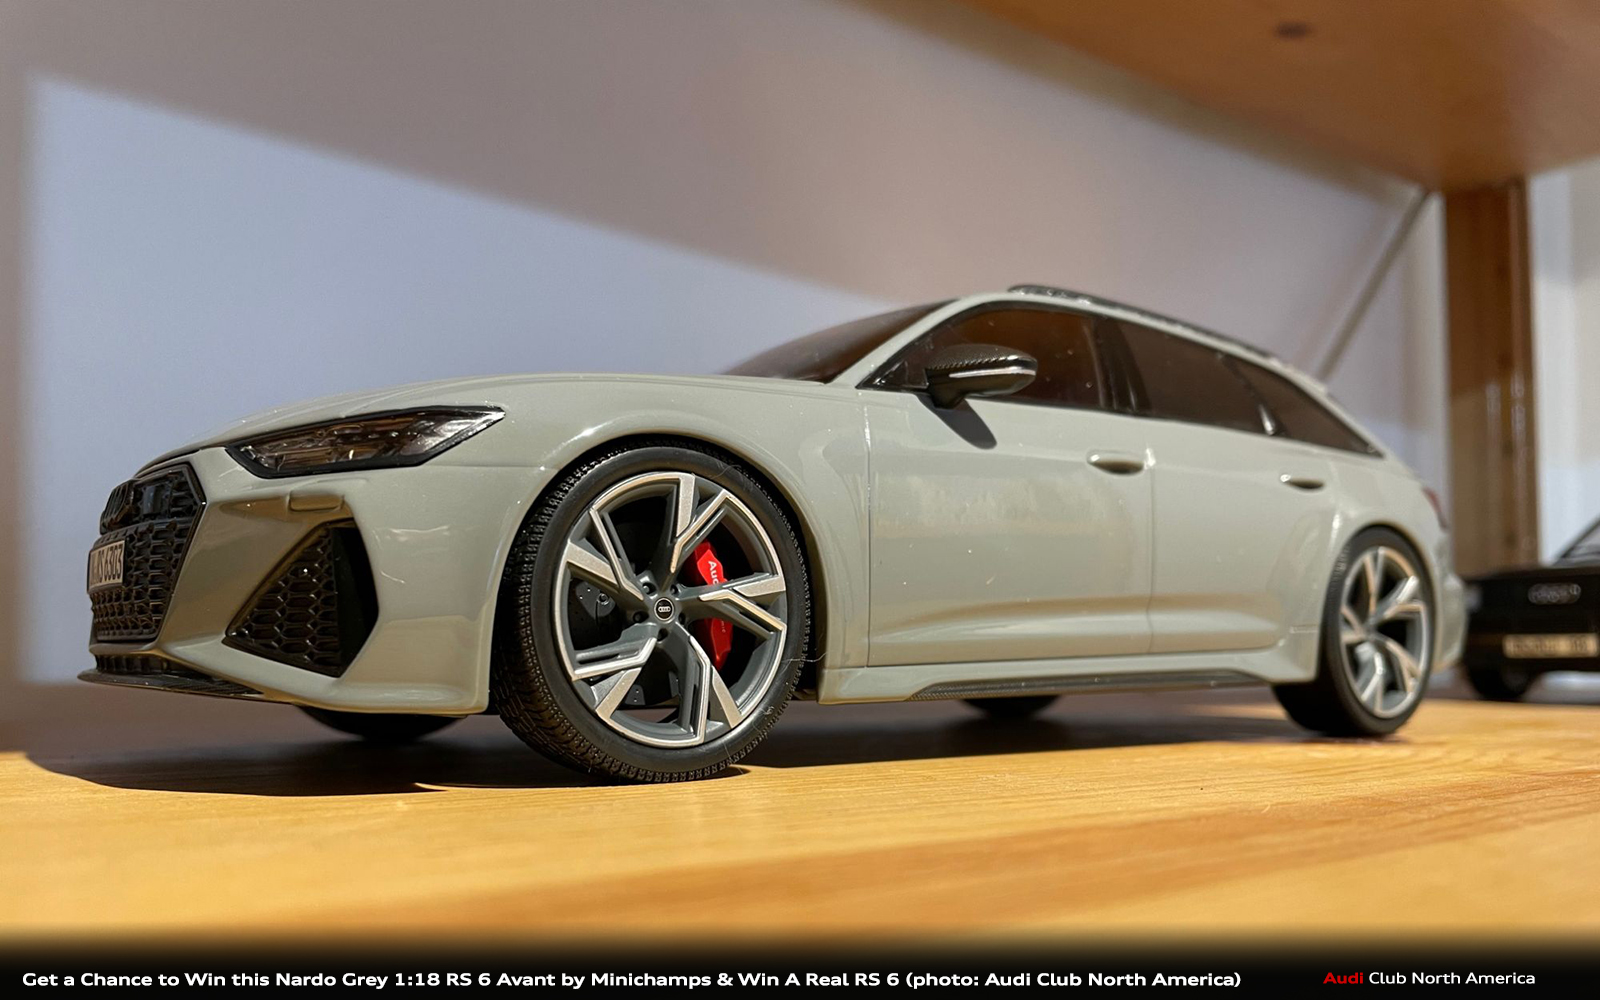 Tomorrow is the Last Day for a Chance to Win This 1:18 Scale Audi RS 6 Avant Model From Minichamps